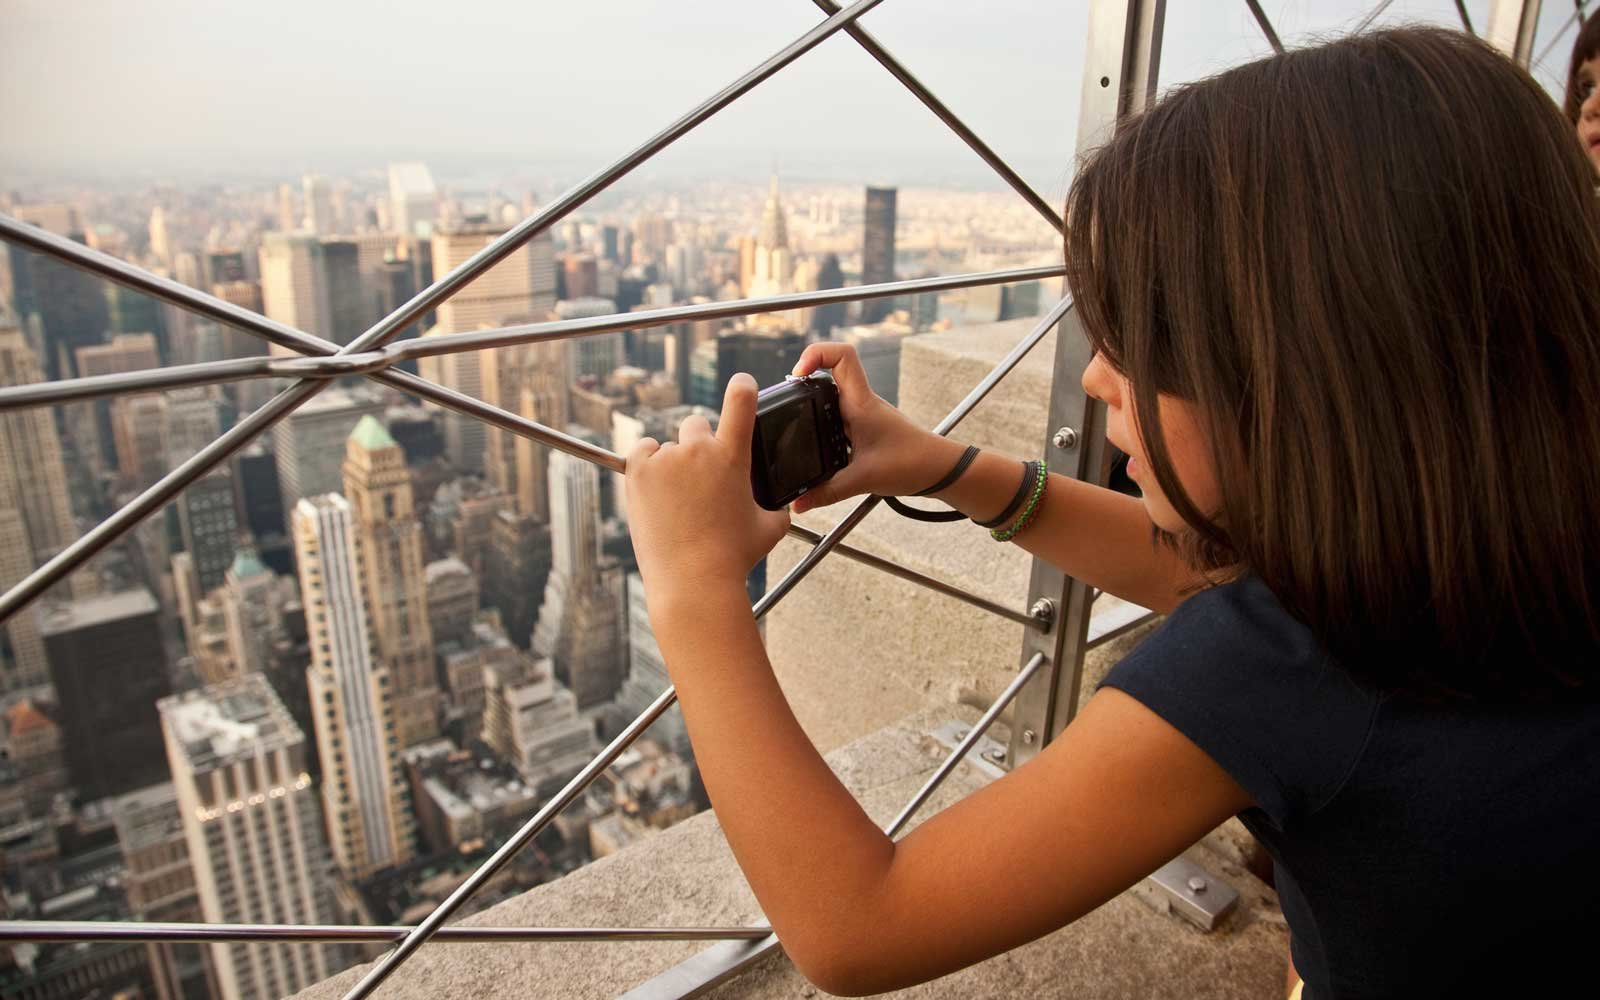 Taking a photo at the Empire State Building